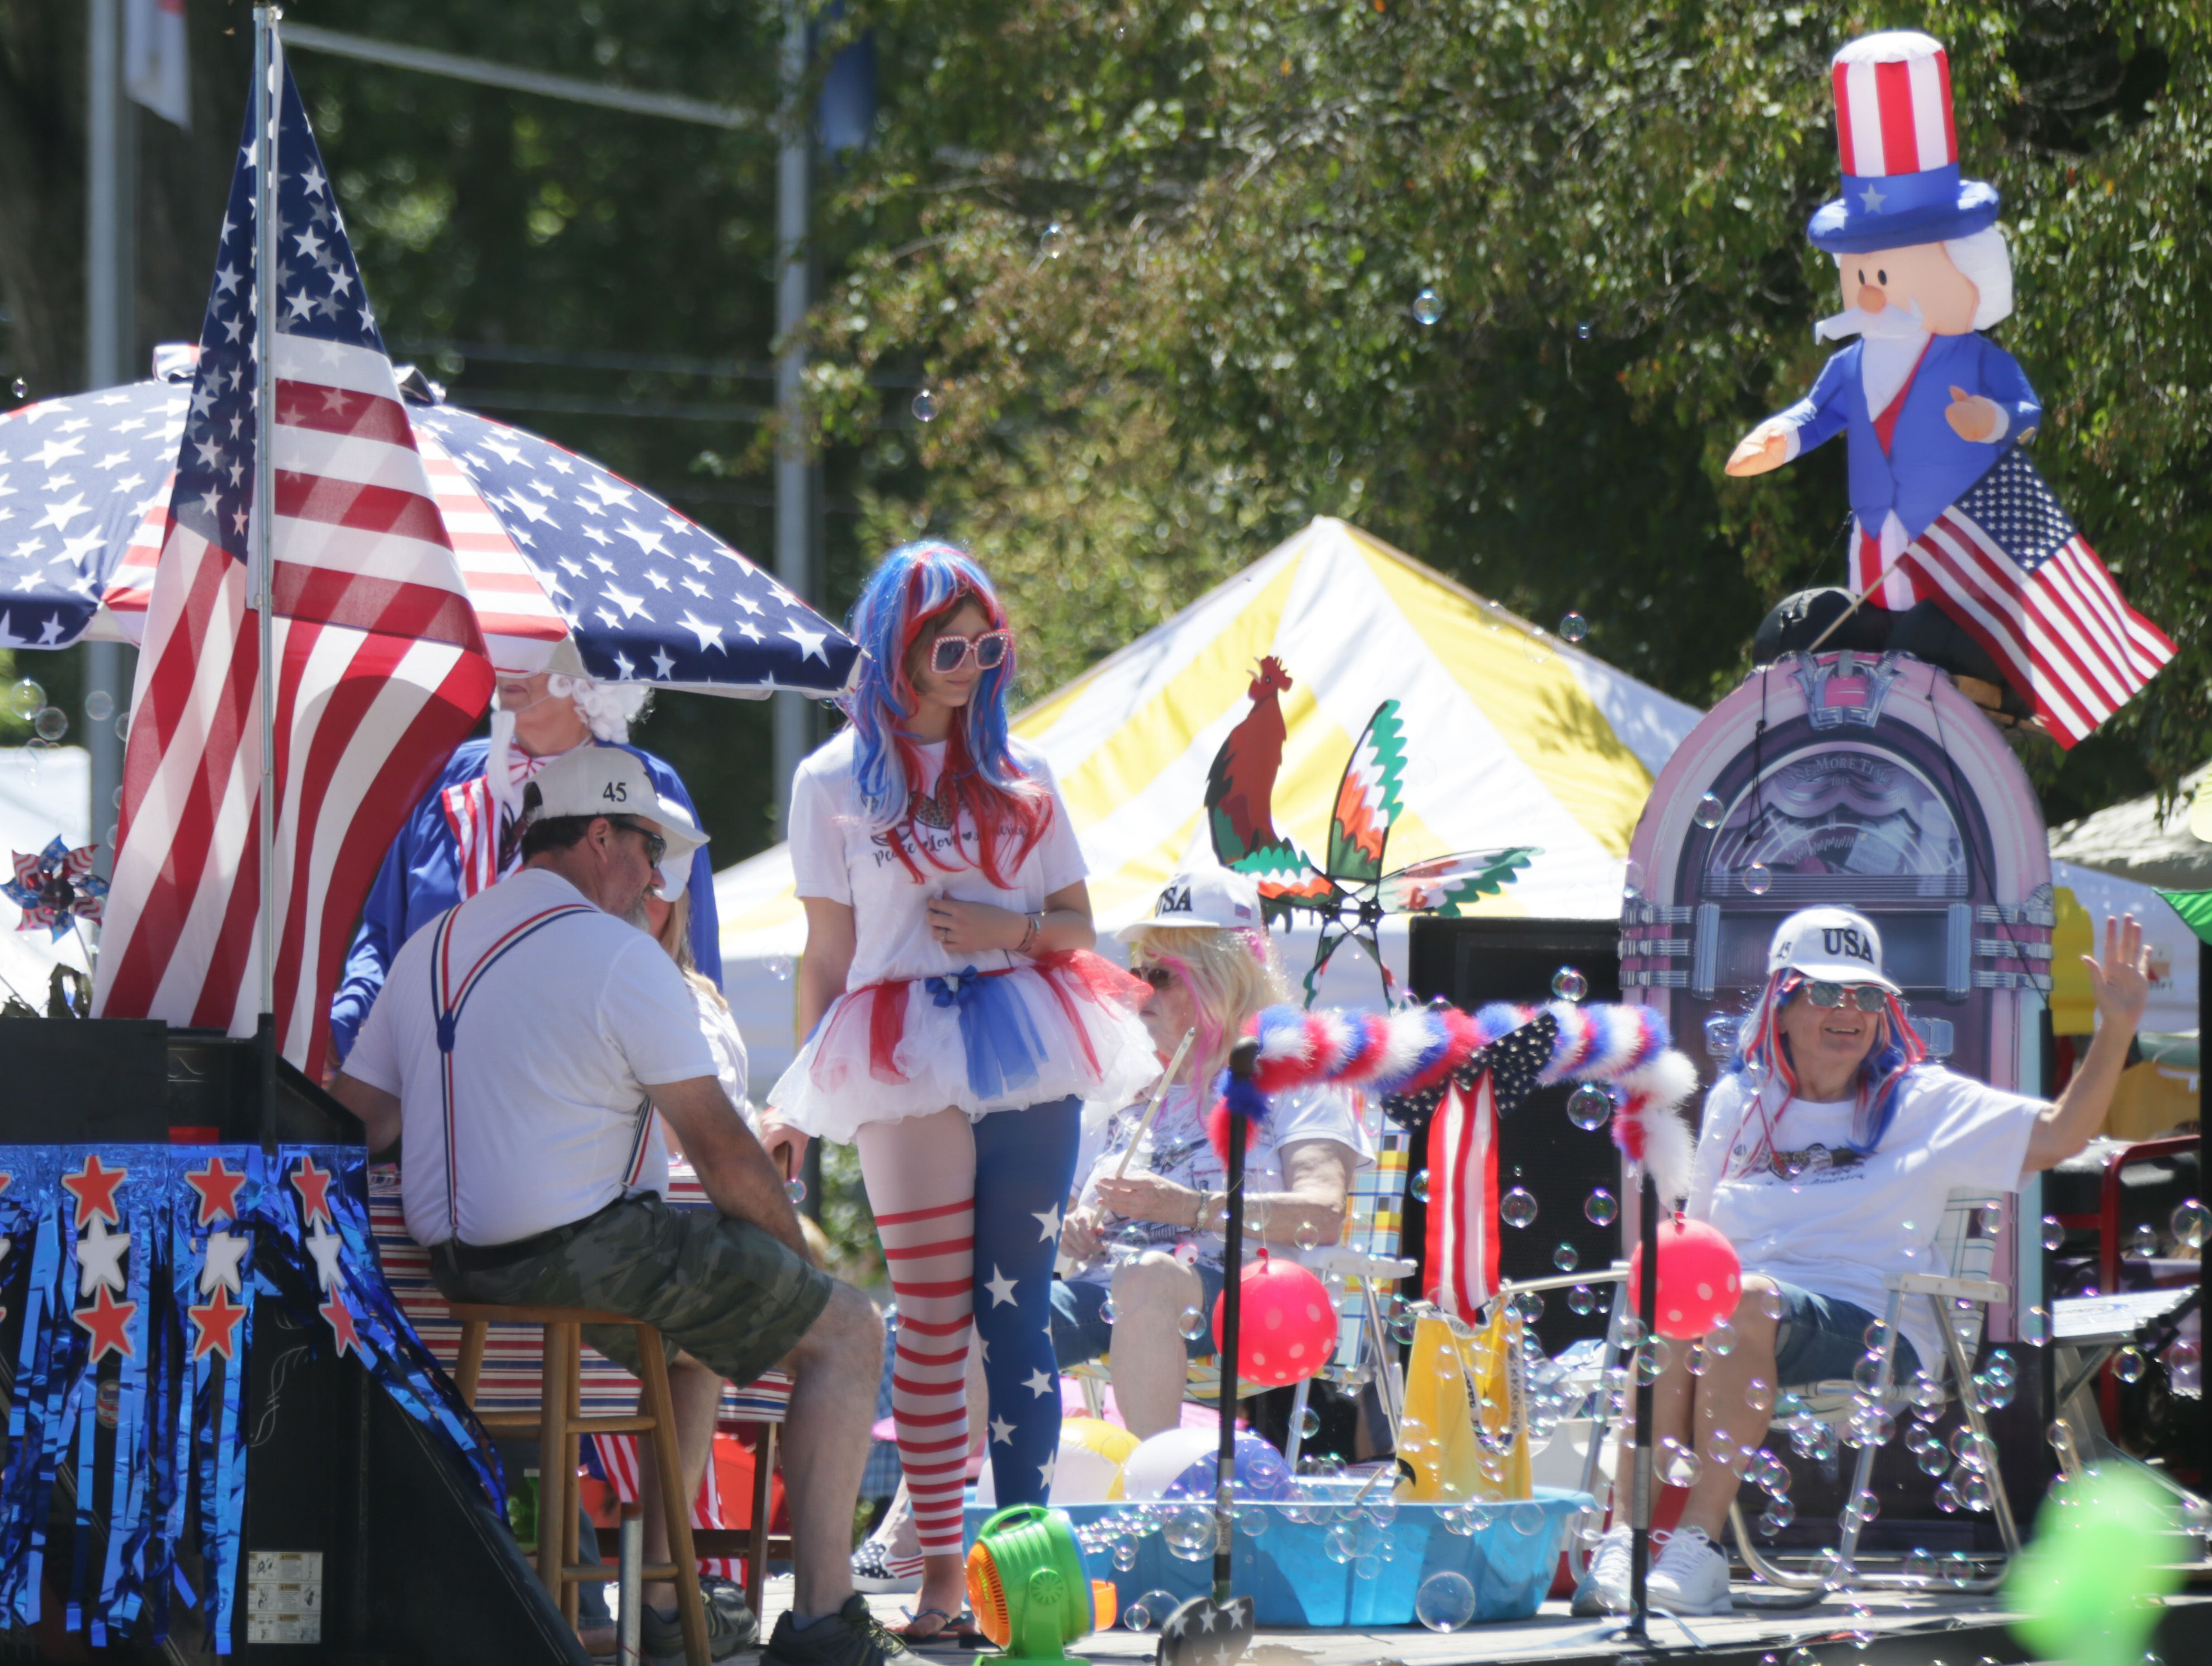 GES Production Sound Services in Princeton ride in the patriotic float in the 74th annual Sweet Corn Festival in Mendota on Sunday Aug. 15, 2021.